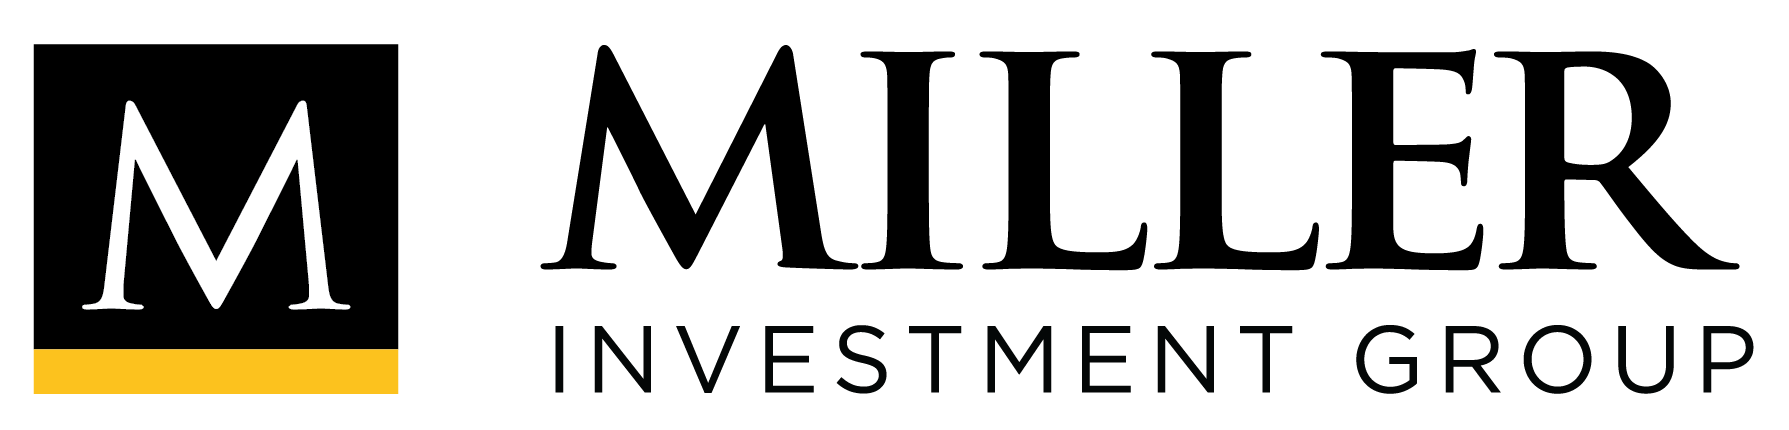 MW Capital Group